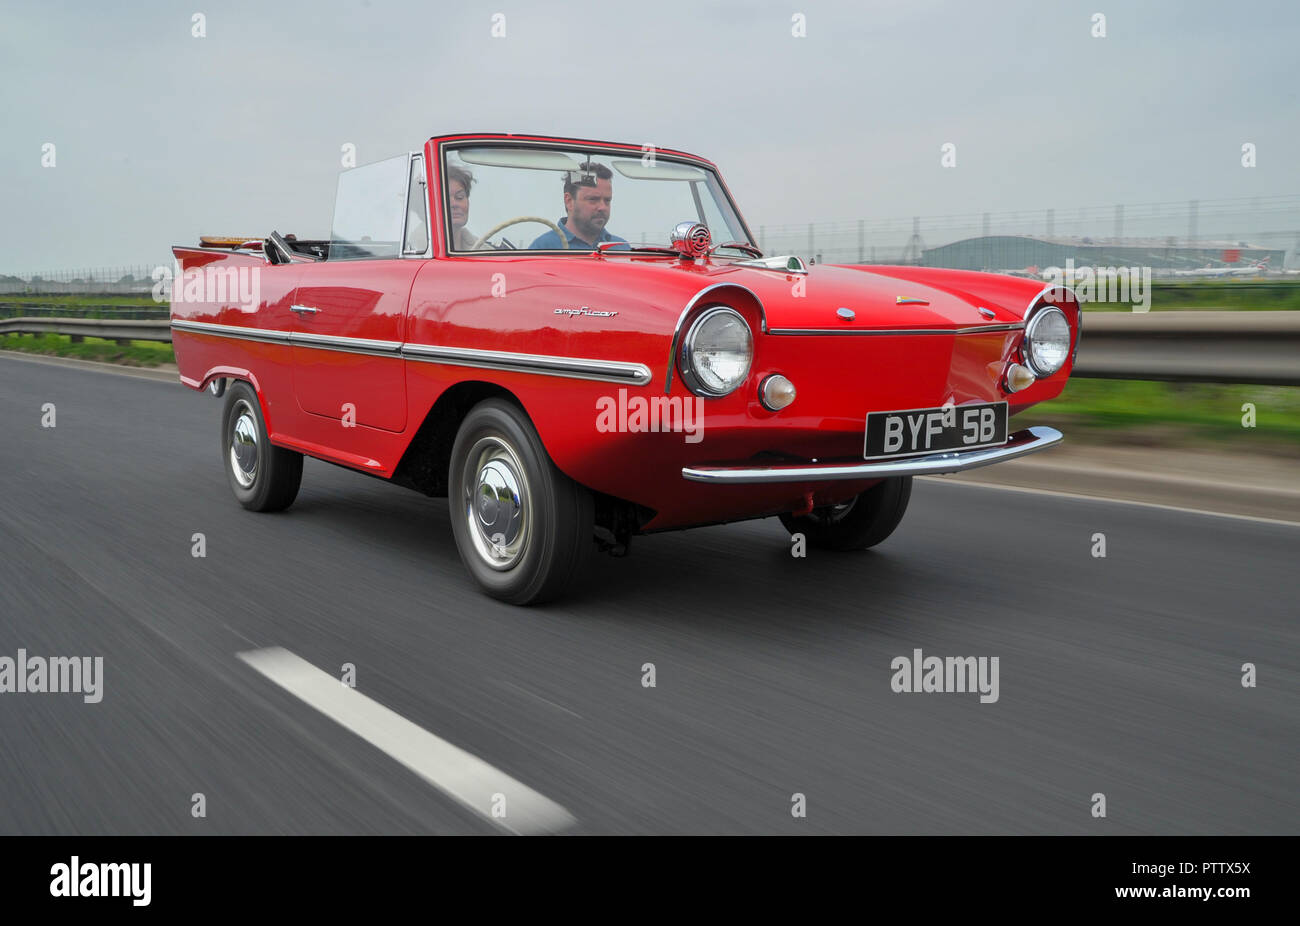 Amphicar - 1960s British amphibious car on land and water - Stock Image